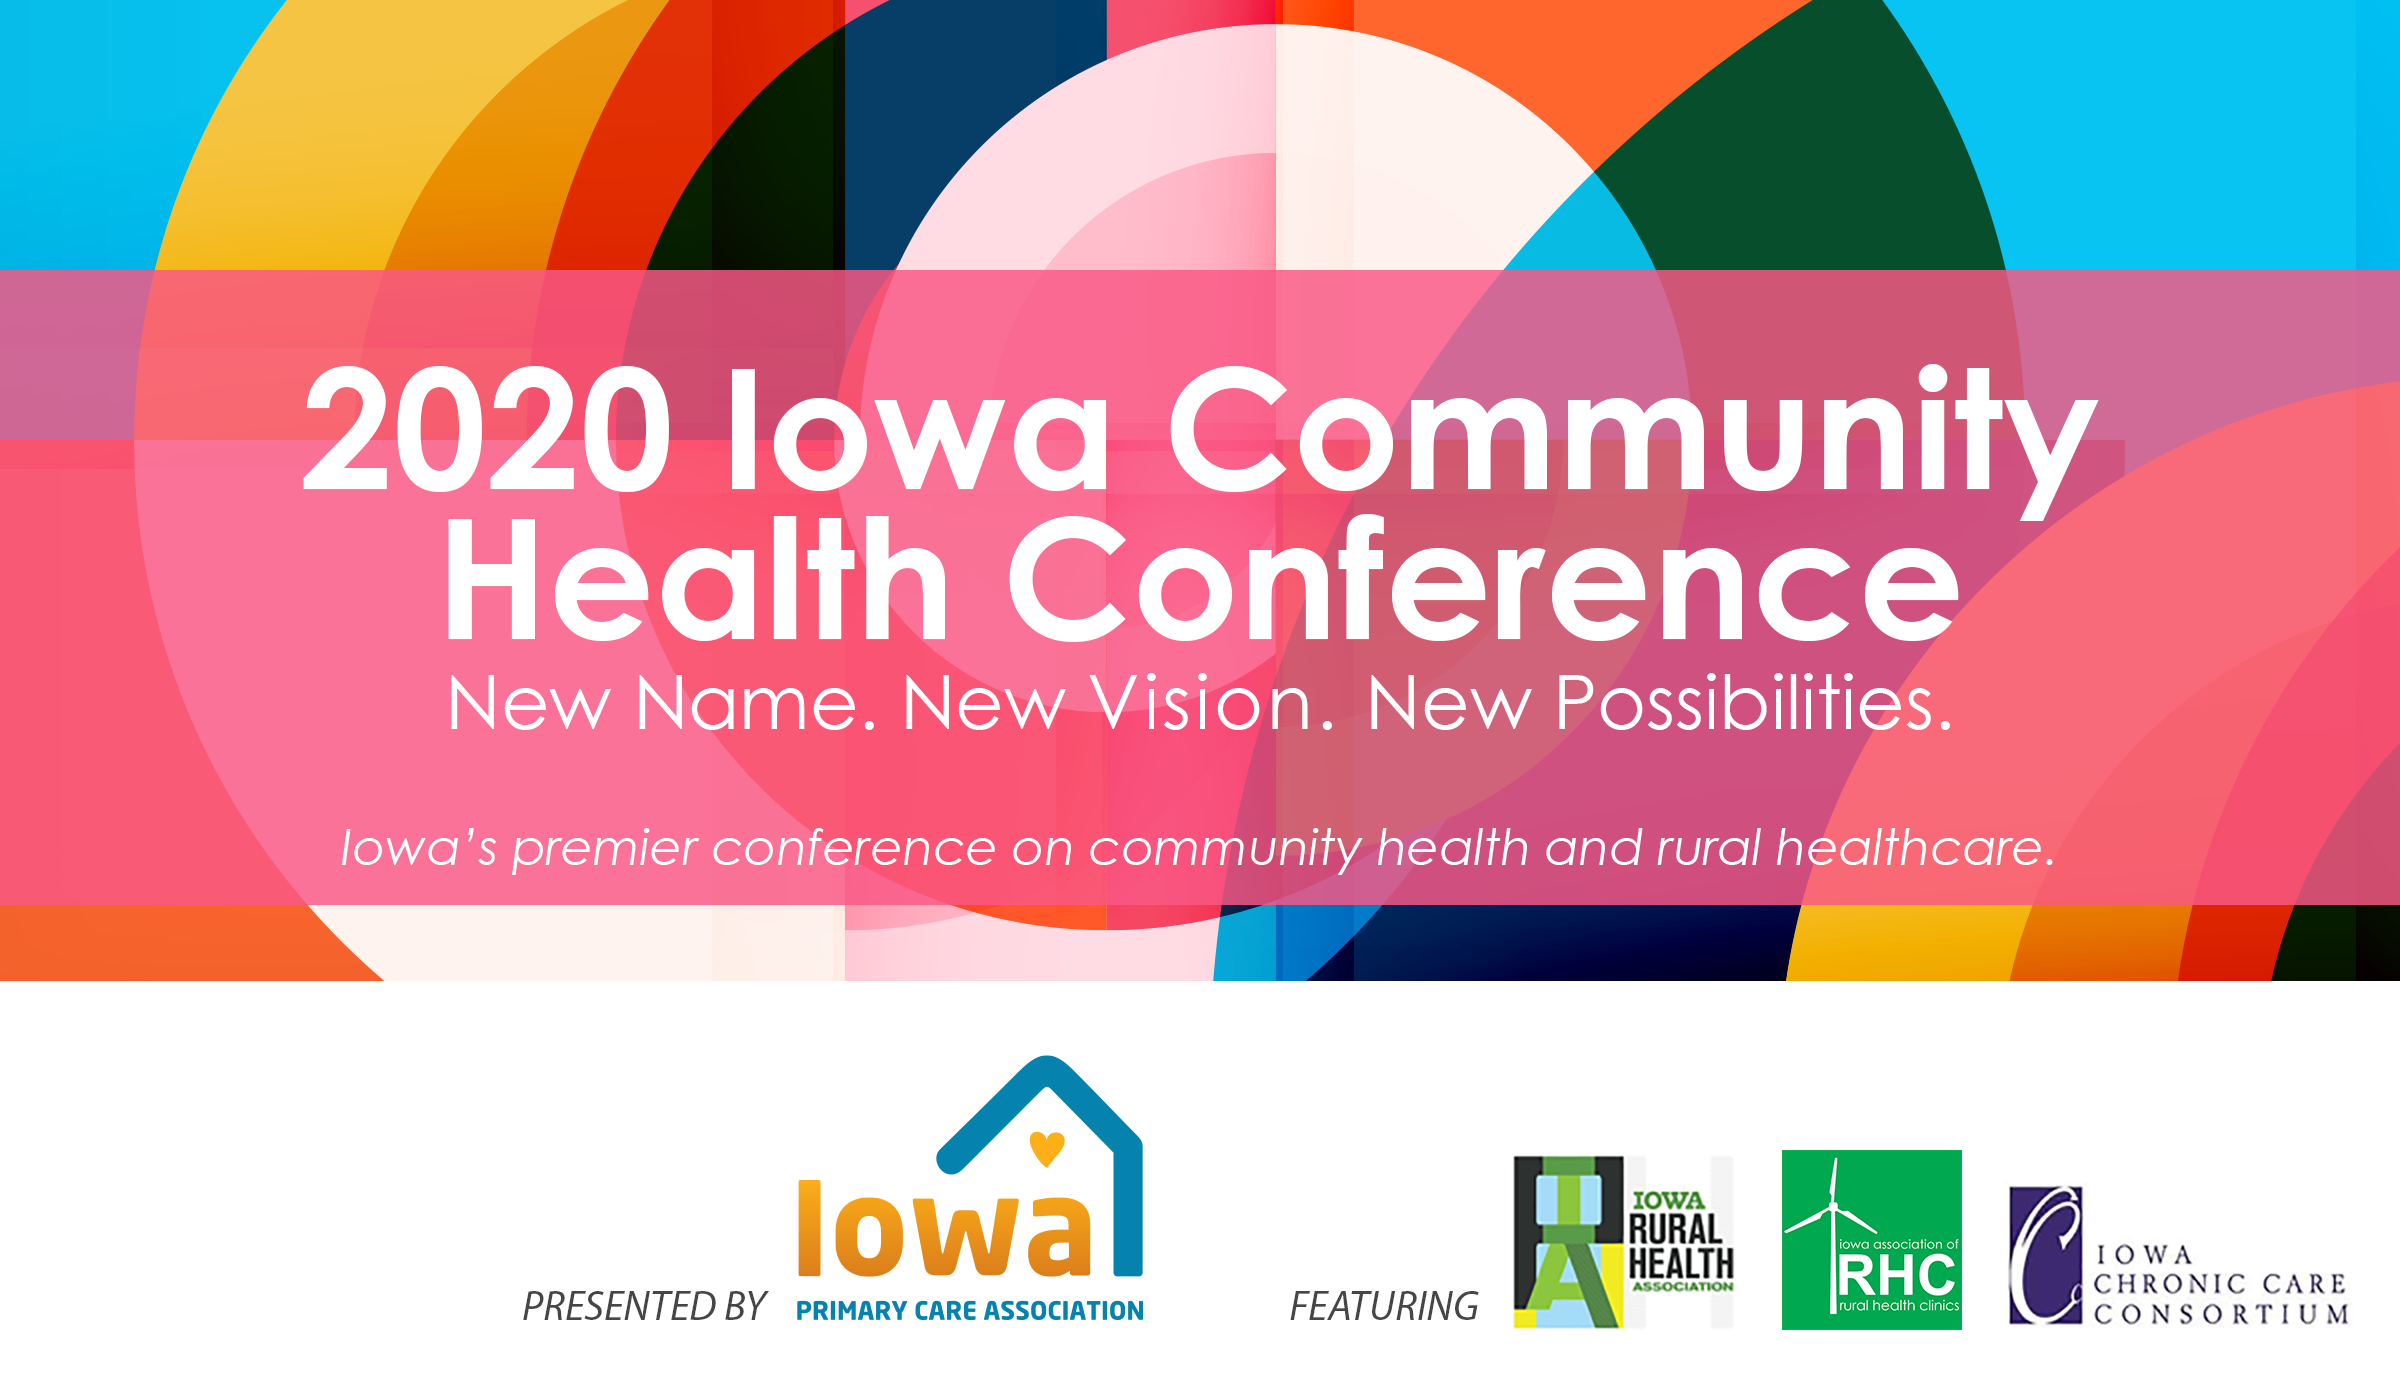 2020 Iowa Comunity Health Conference large